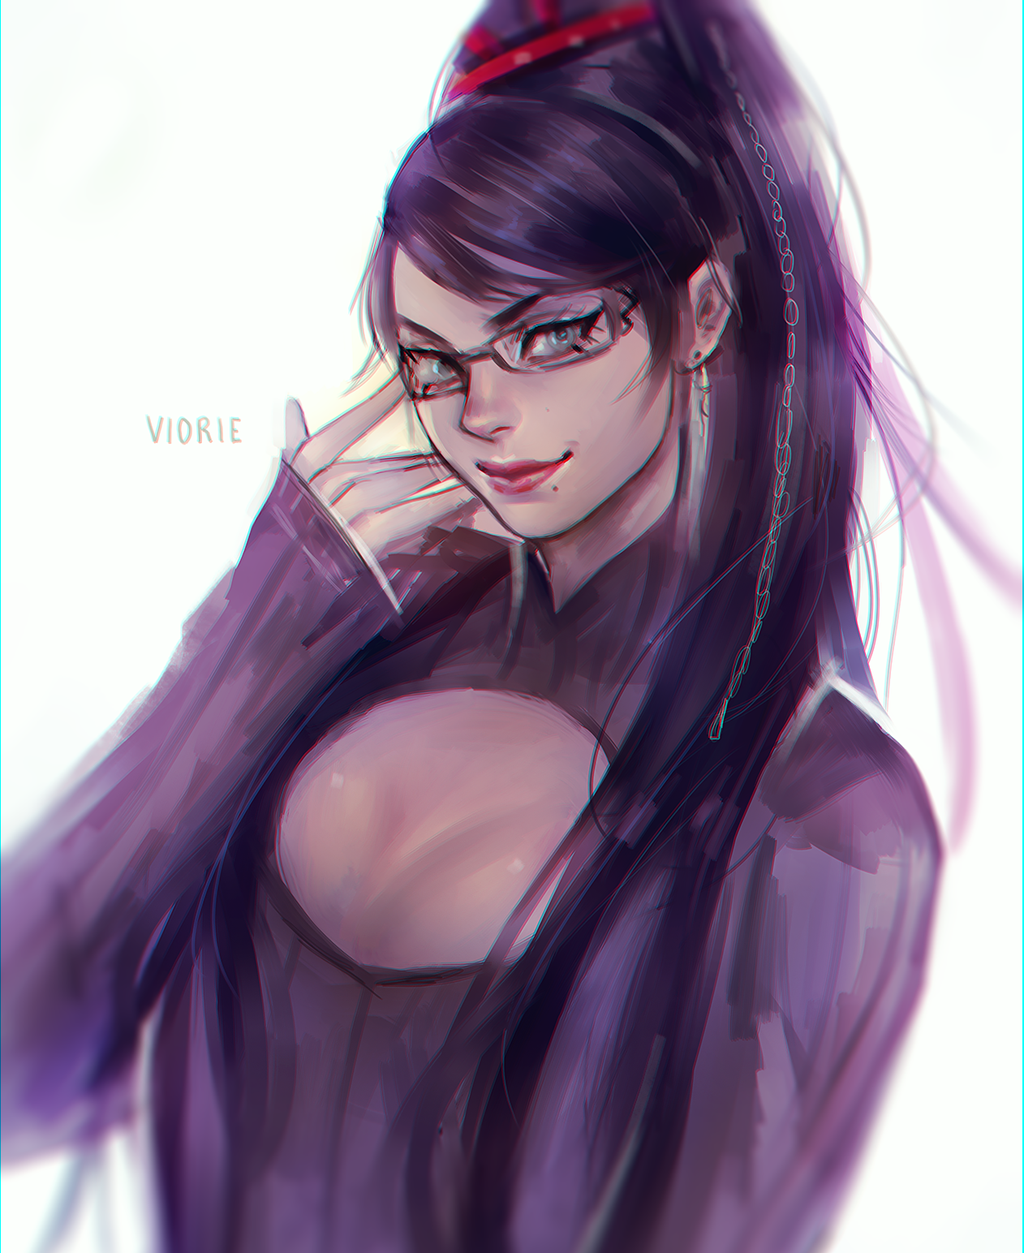 bayonetta fan art - Google Search